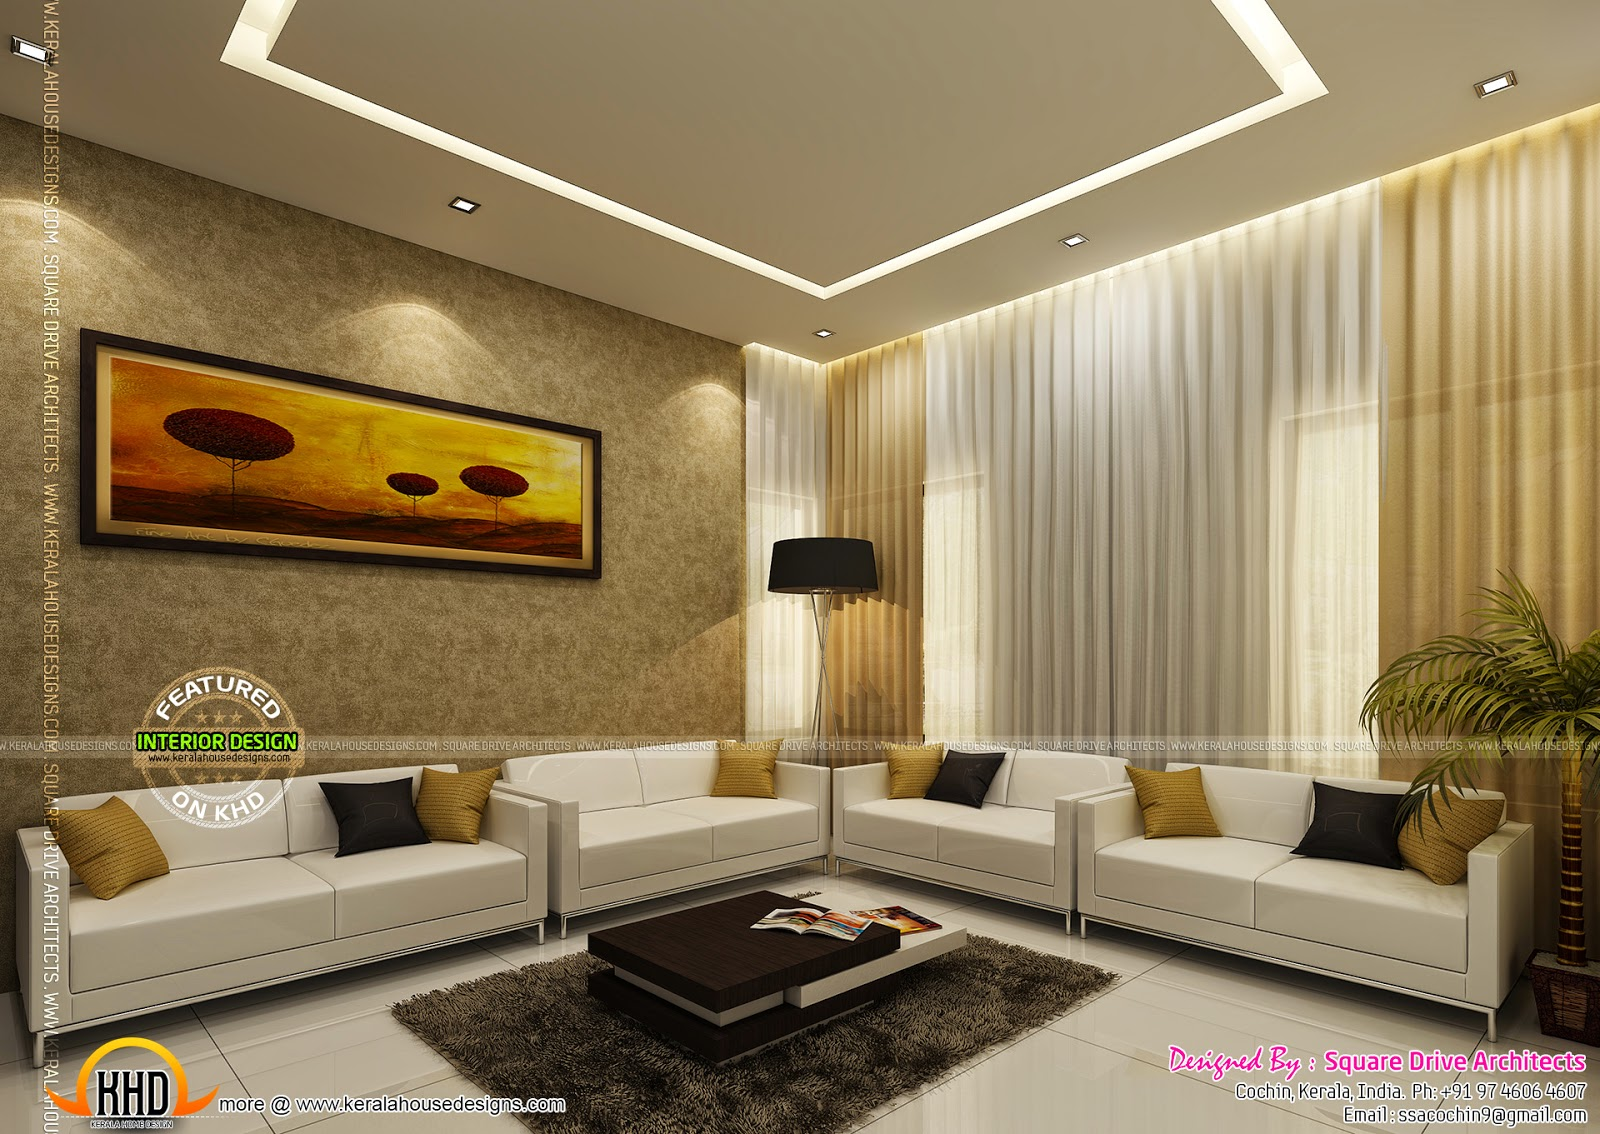 Homes Interior Designs Home Interiors Designs Kerala Home Design And Floor Plans